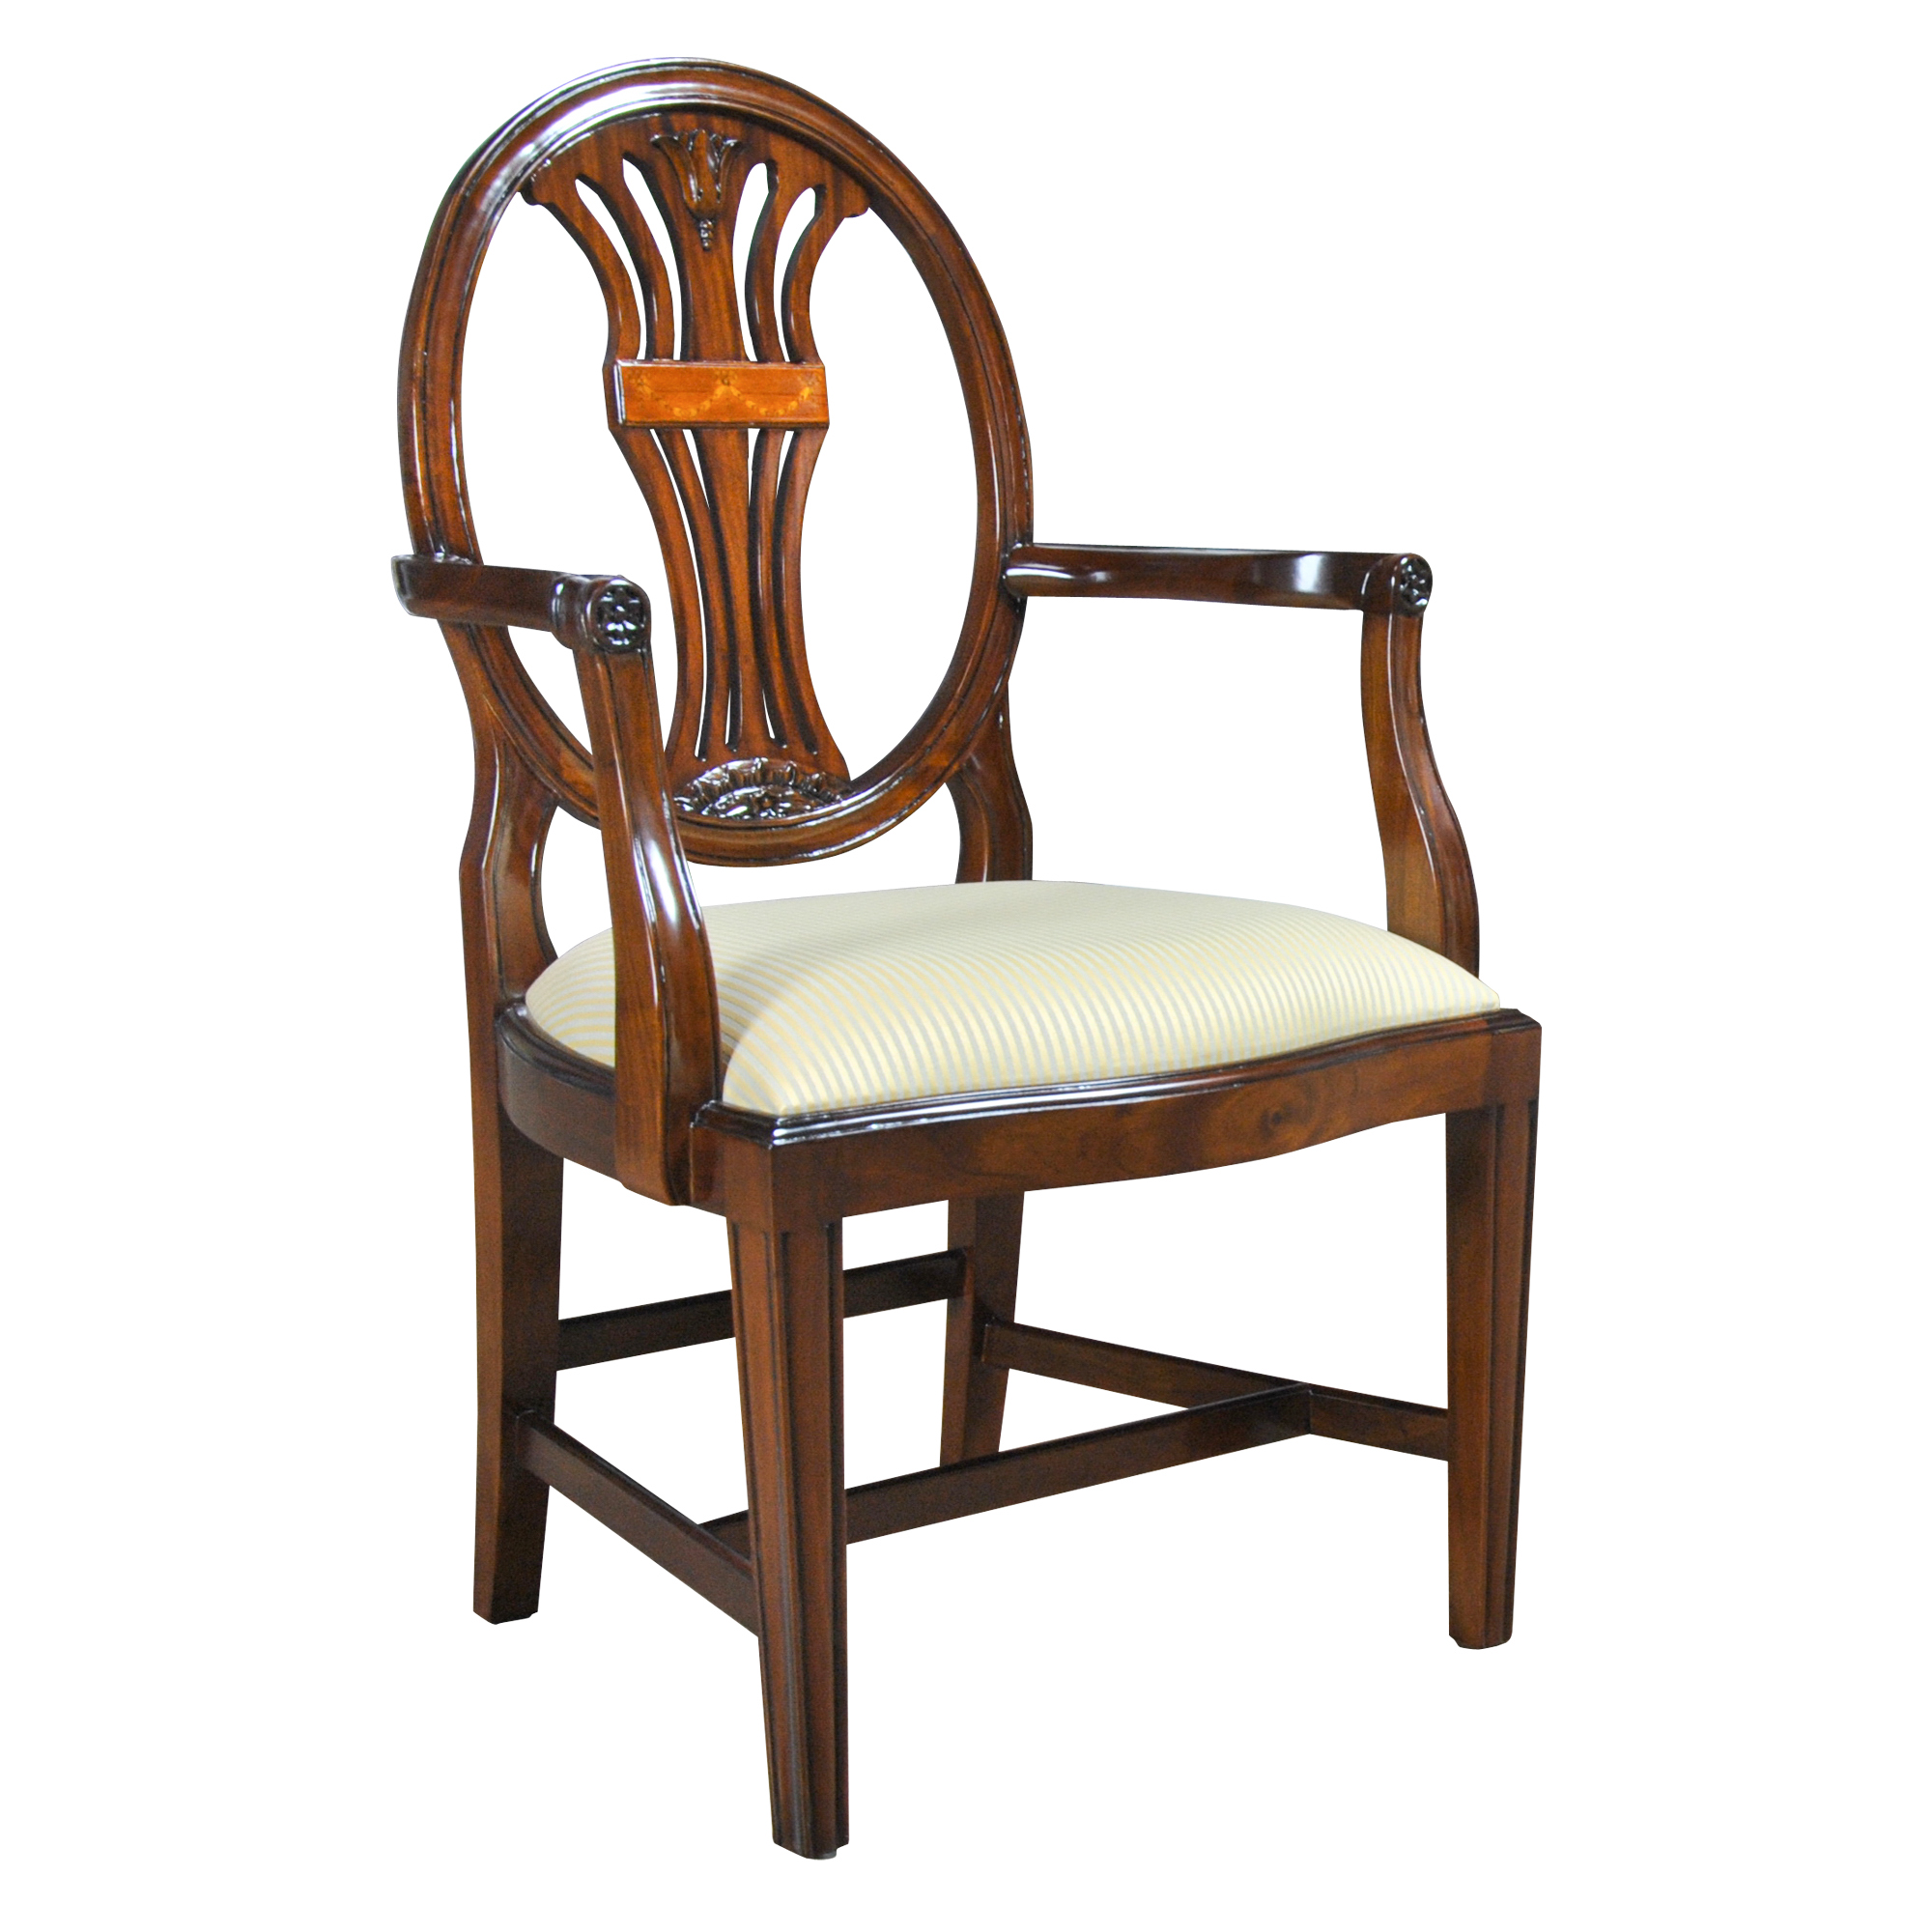 Oval Back Chair Oval Back Inlaid Arm Chair Niagara Furniture Solid Mahogany